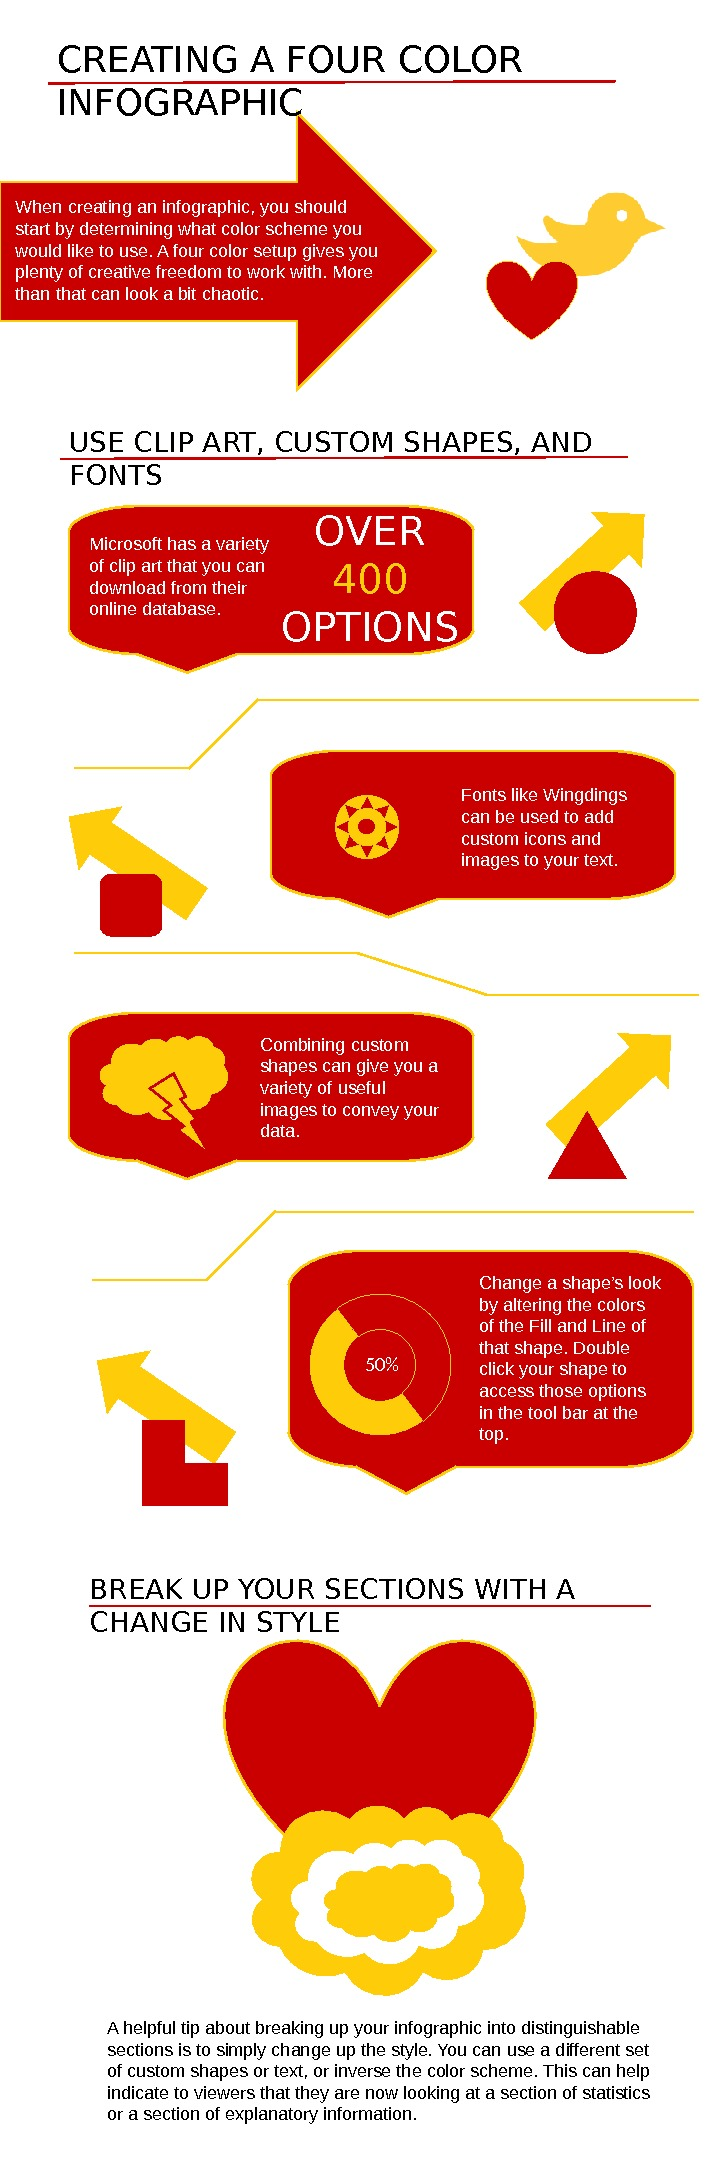 CREATING A FOUR COLOR INFOGRAPHIC When creating an infographic, you should start by determining what color